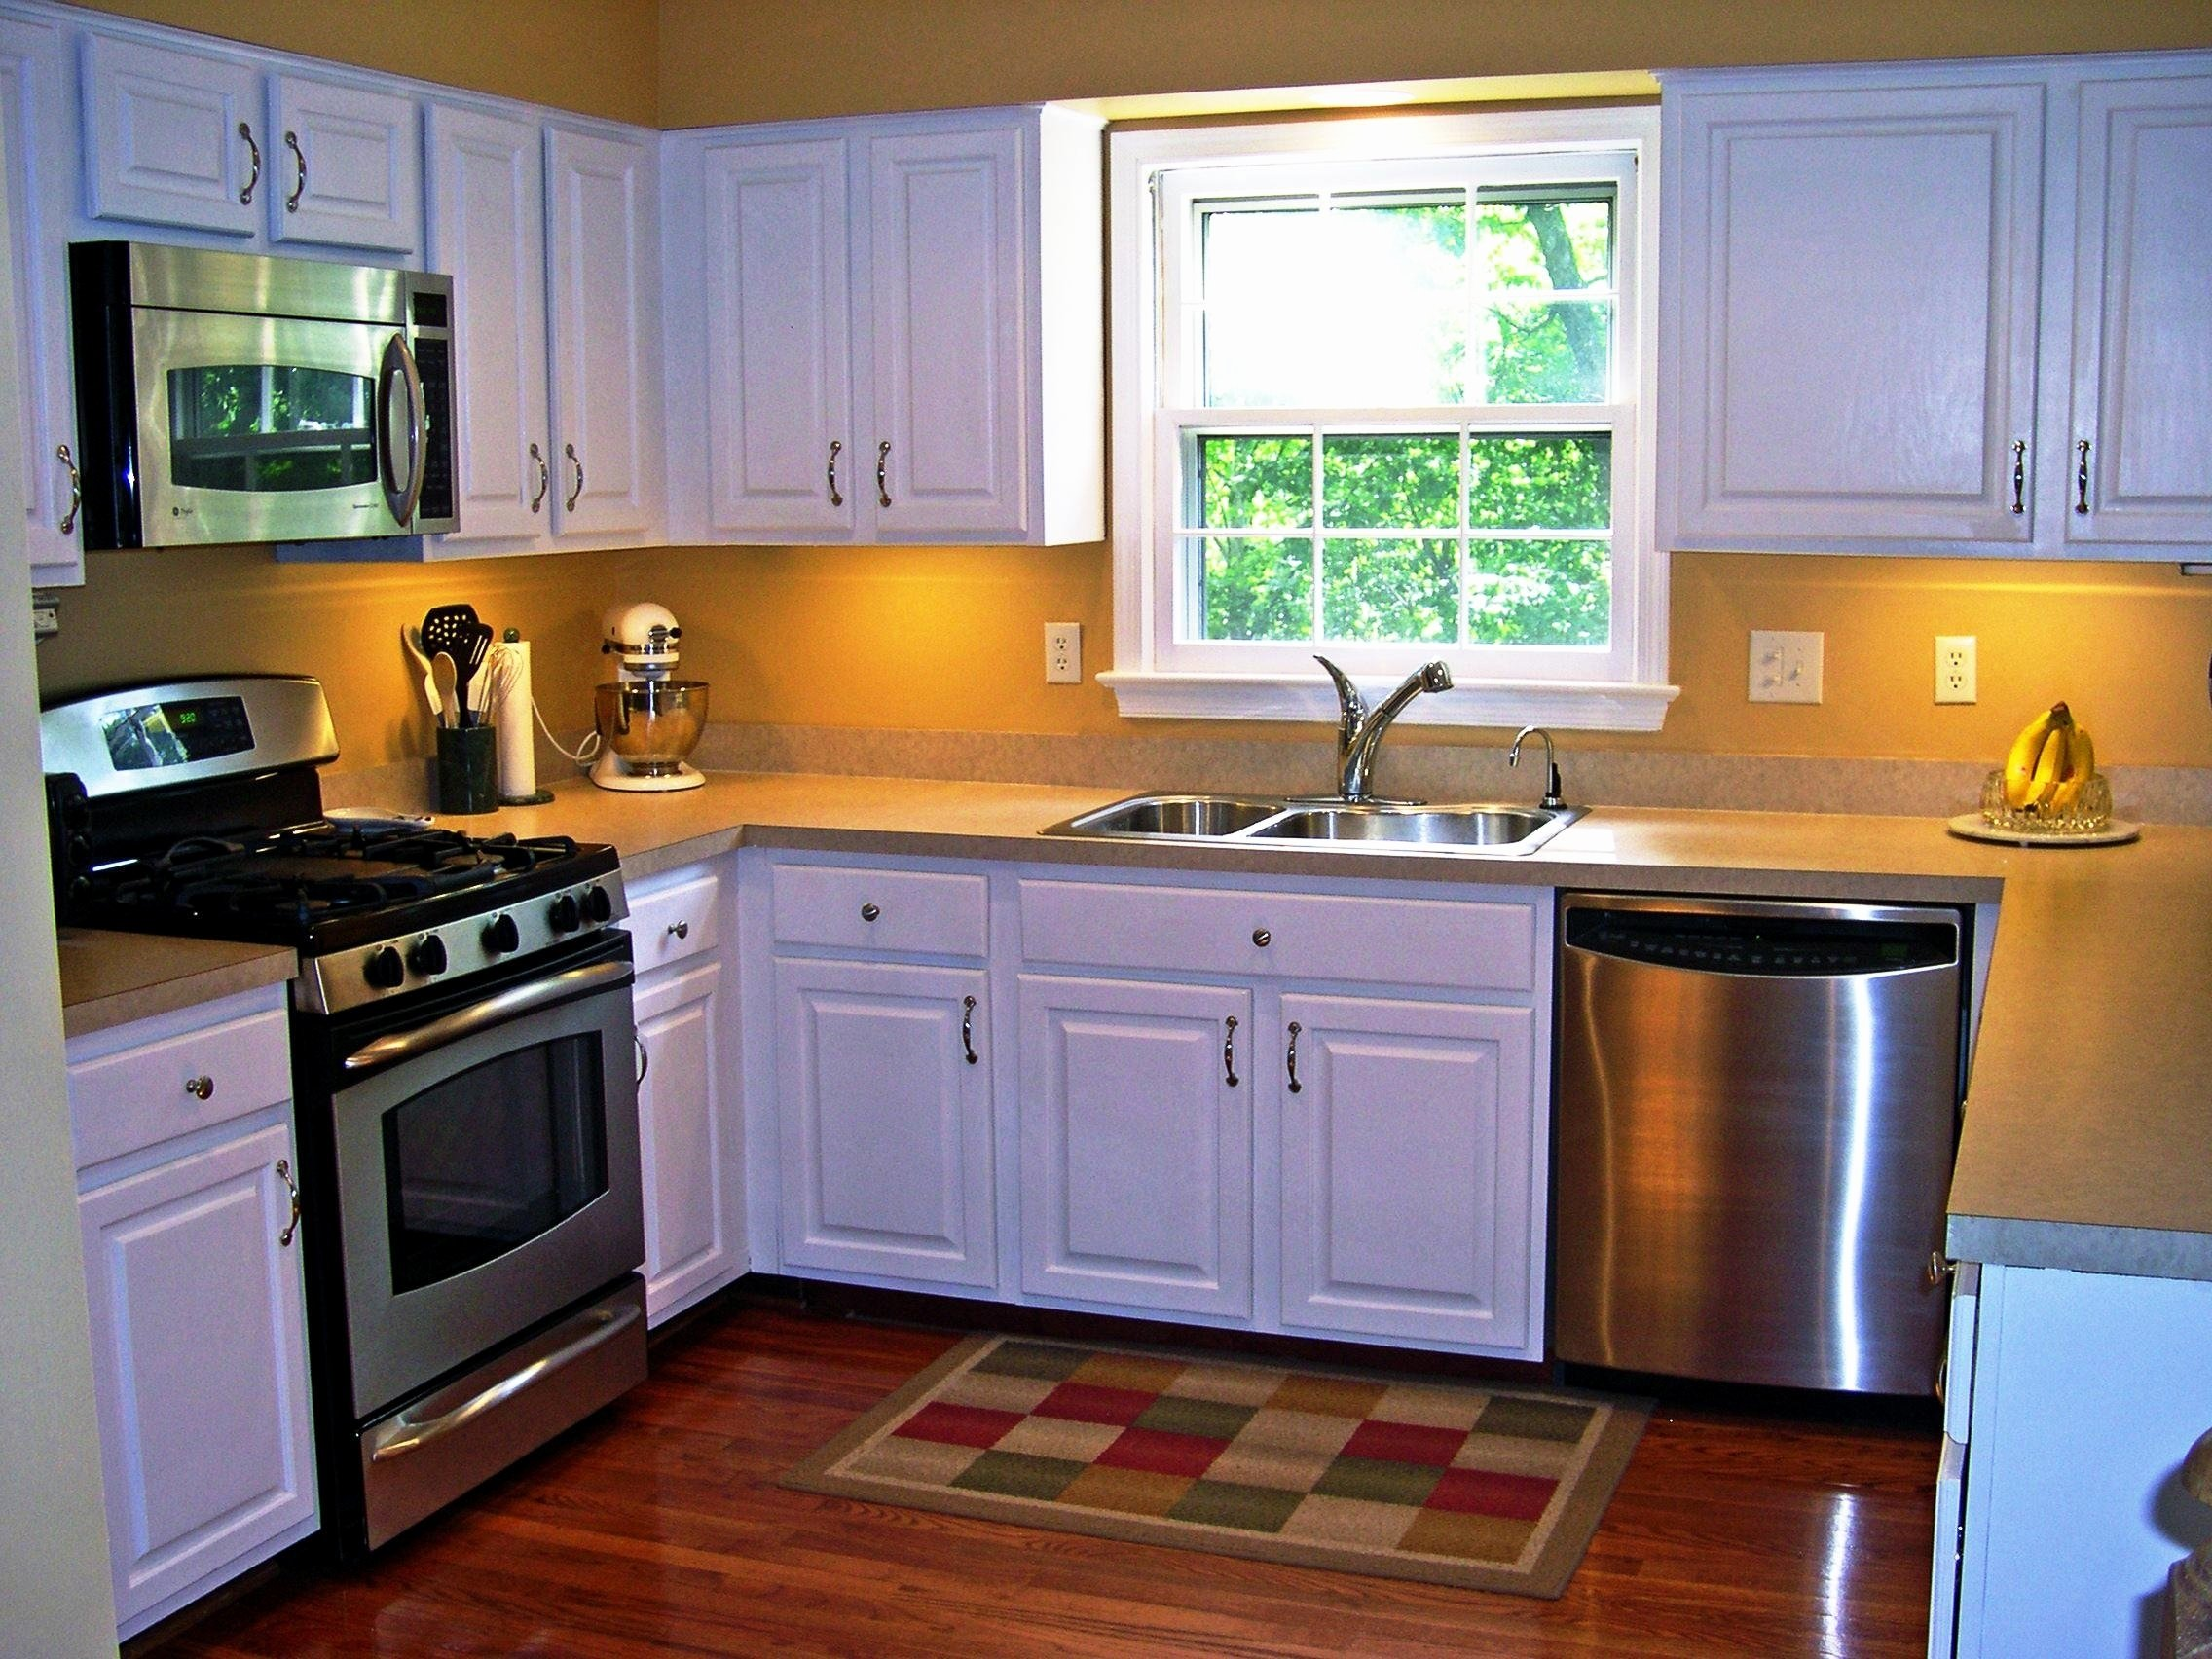 10 Best Small Kitchen Ideas On A Budget small kitchen ideas on a budget best of kitchen ideas bud kitchen 2020